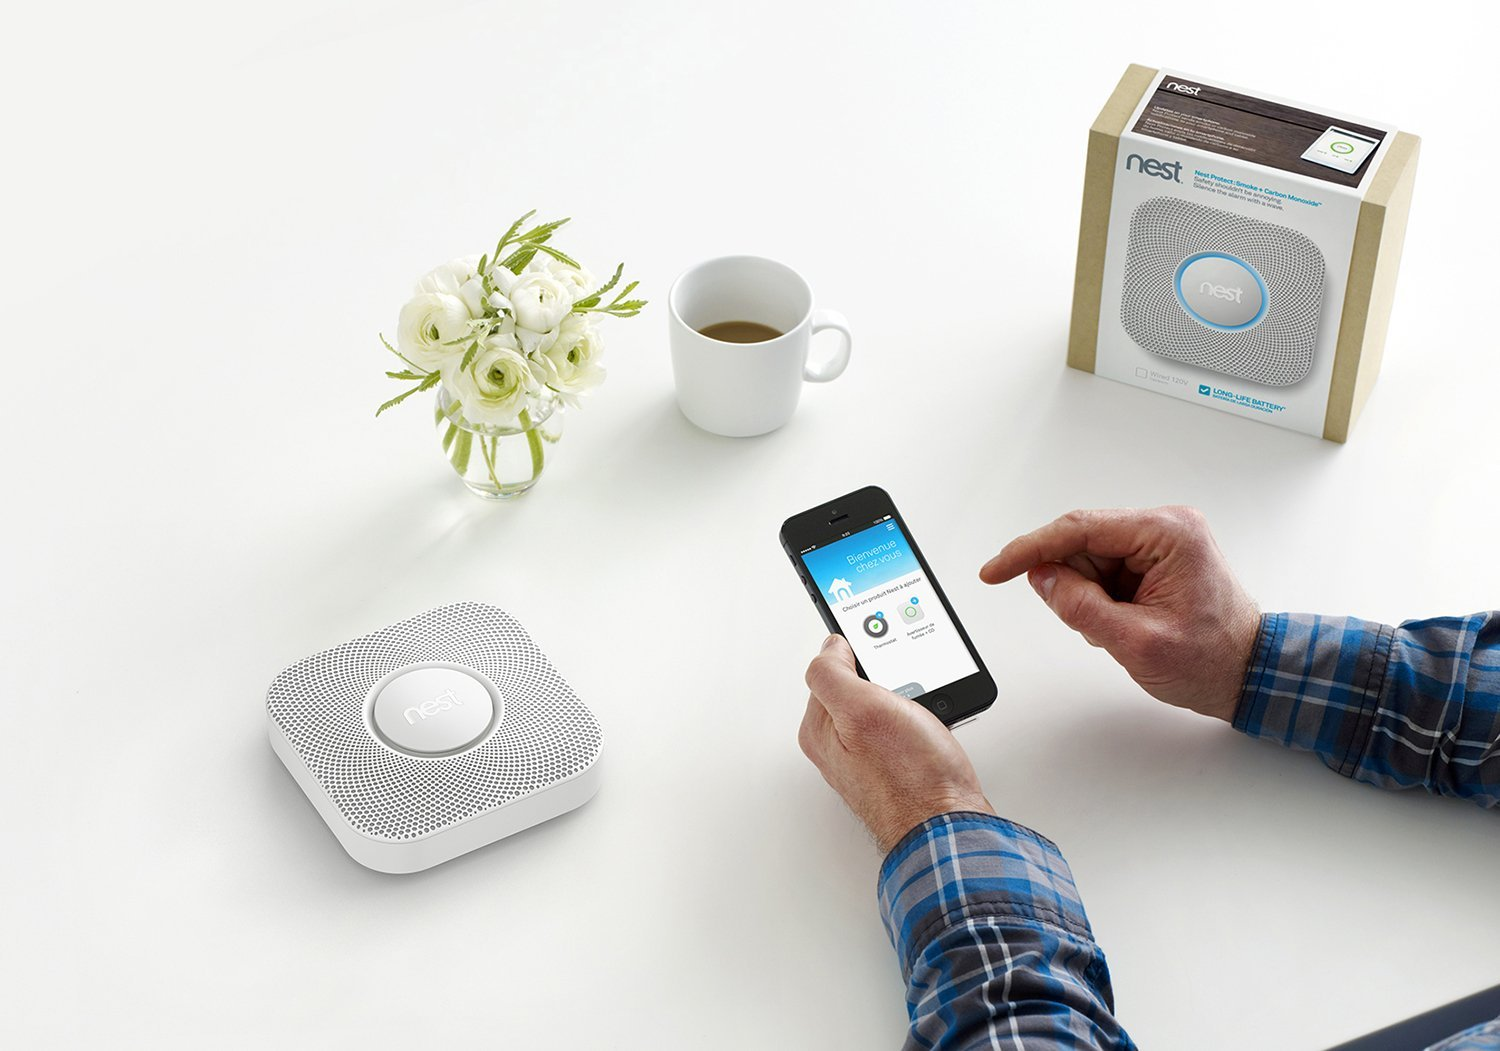 Gagnez un dispositif Nest Protect